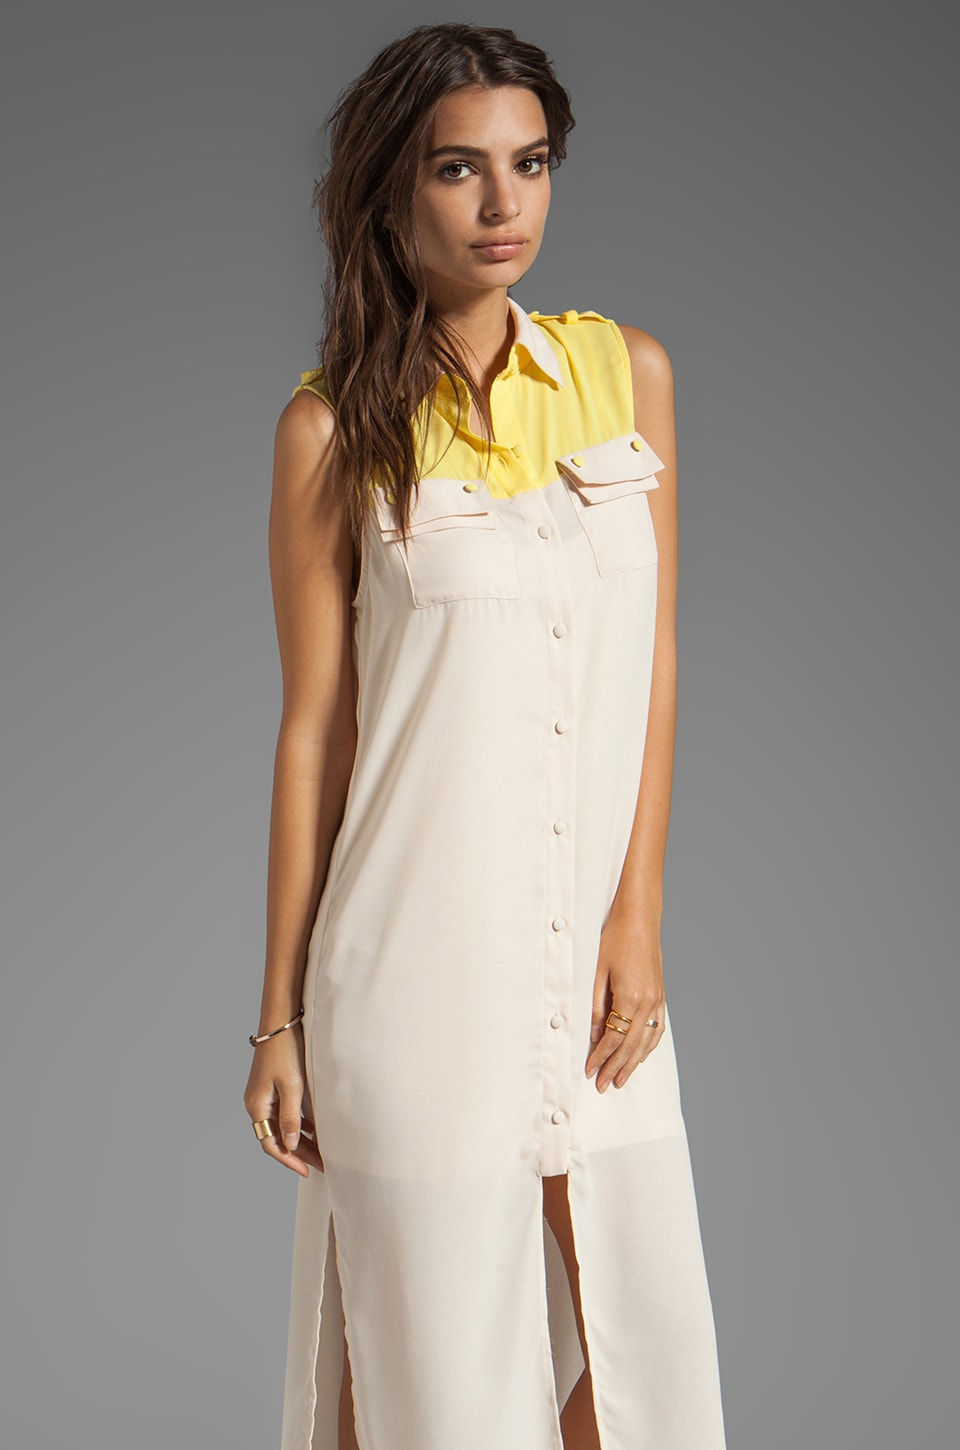 Ladakh The Ritual Shirt Dress in Nude